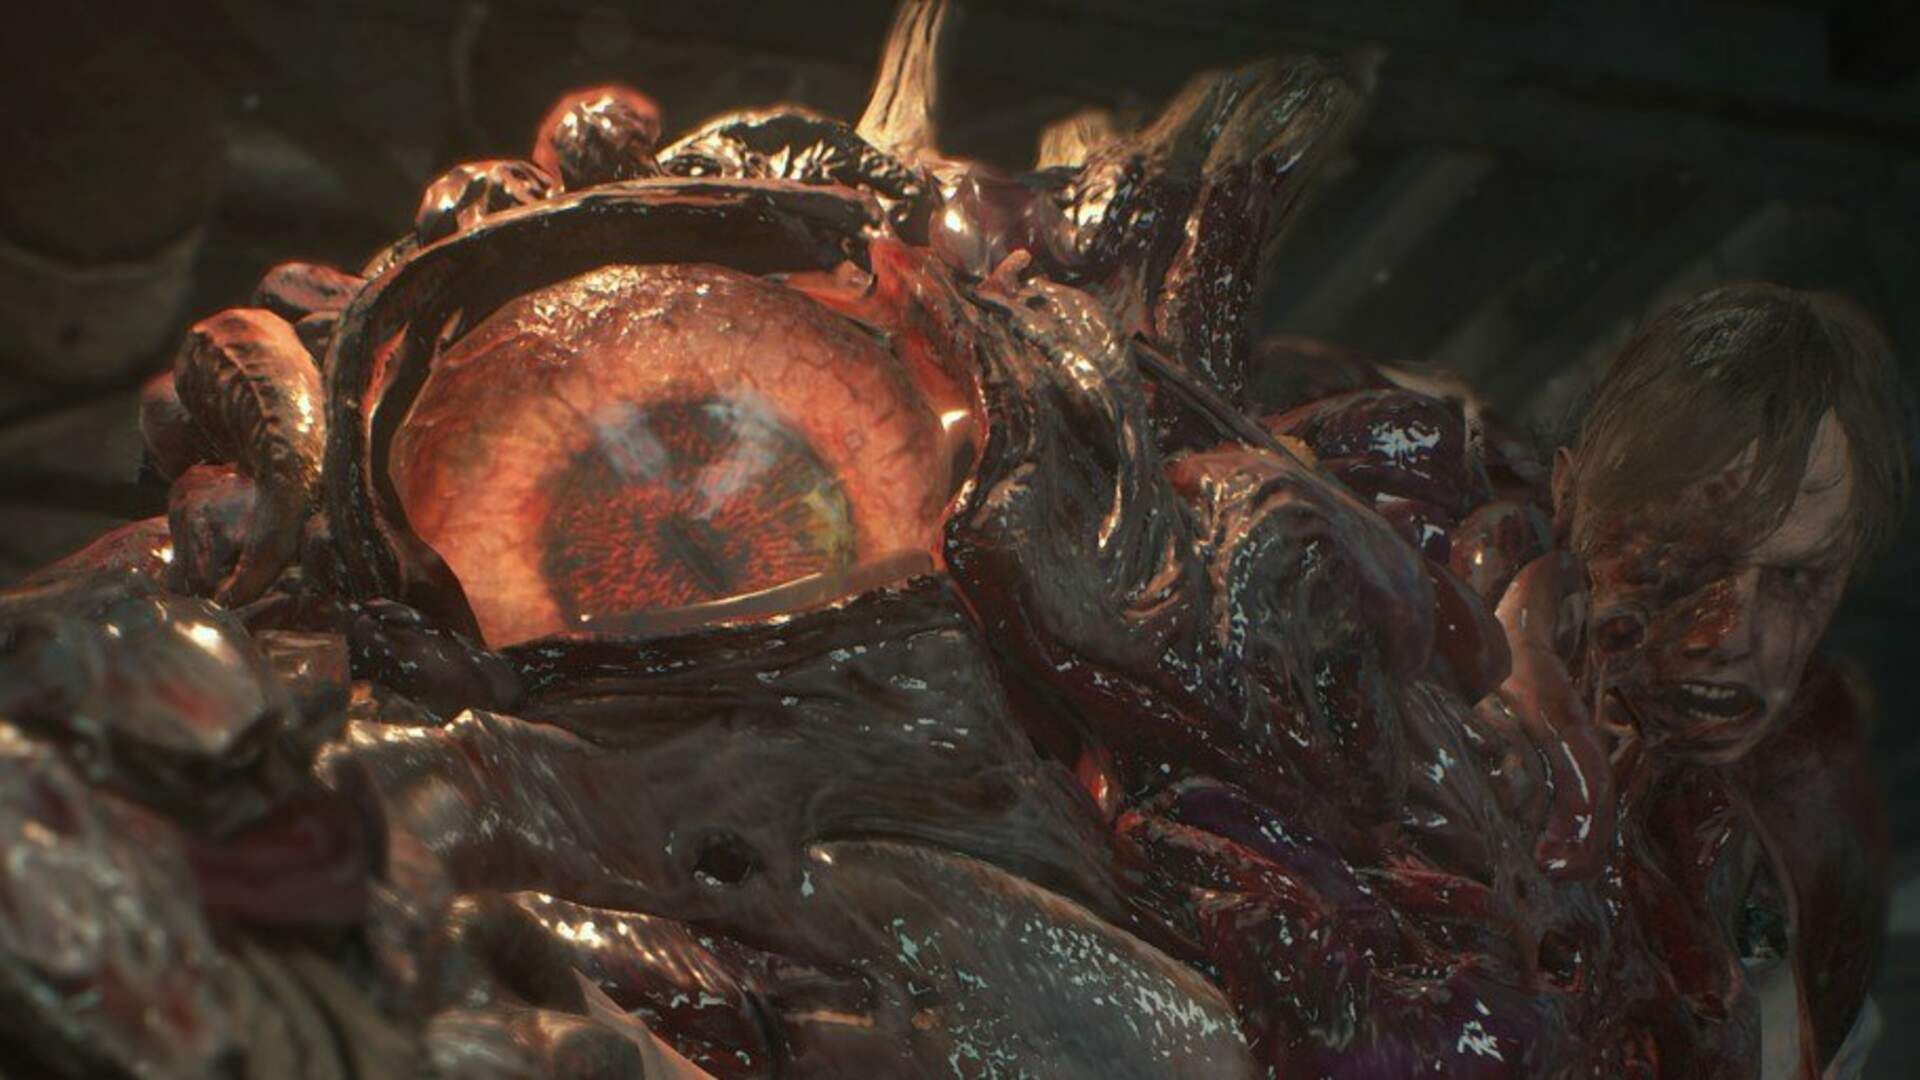 Resident Evil 2 Remake Screens Reveal Mutated William Birkin and Sherry Birkin in Claire Campaign